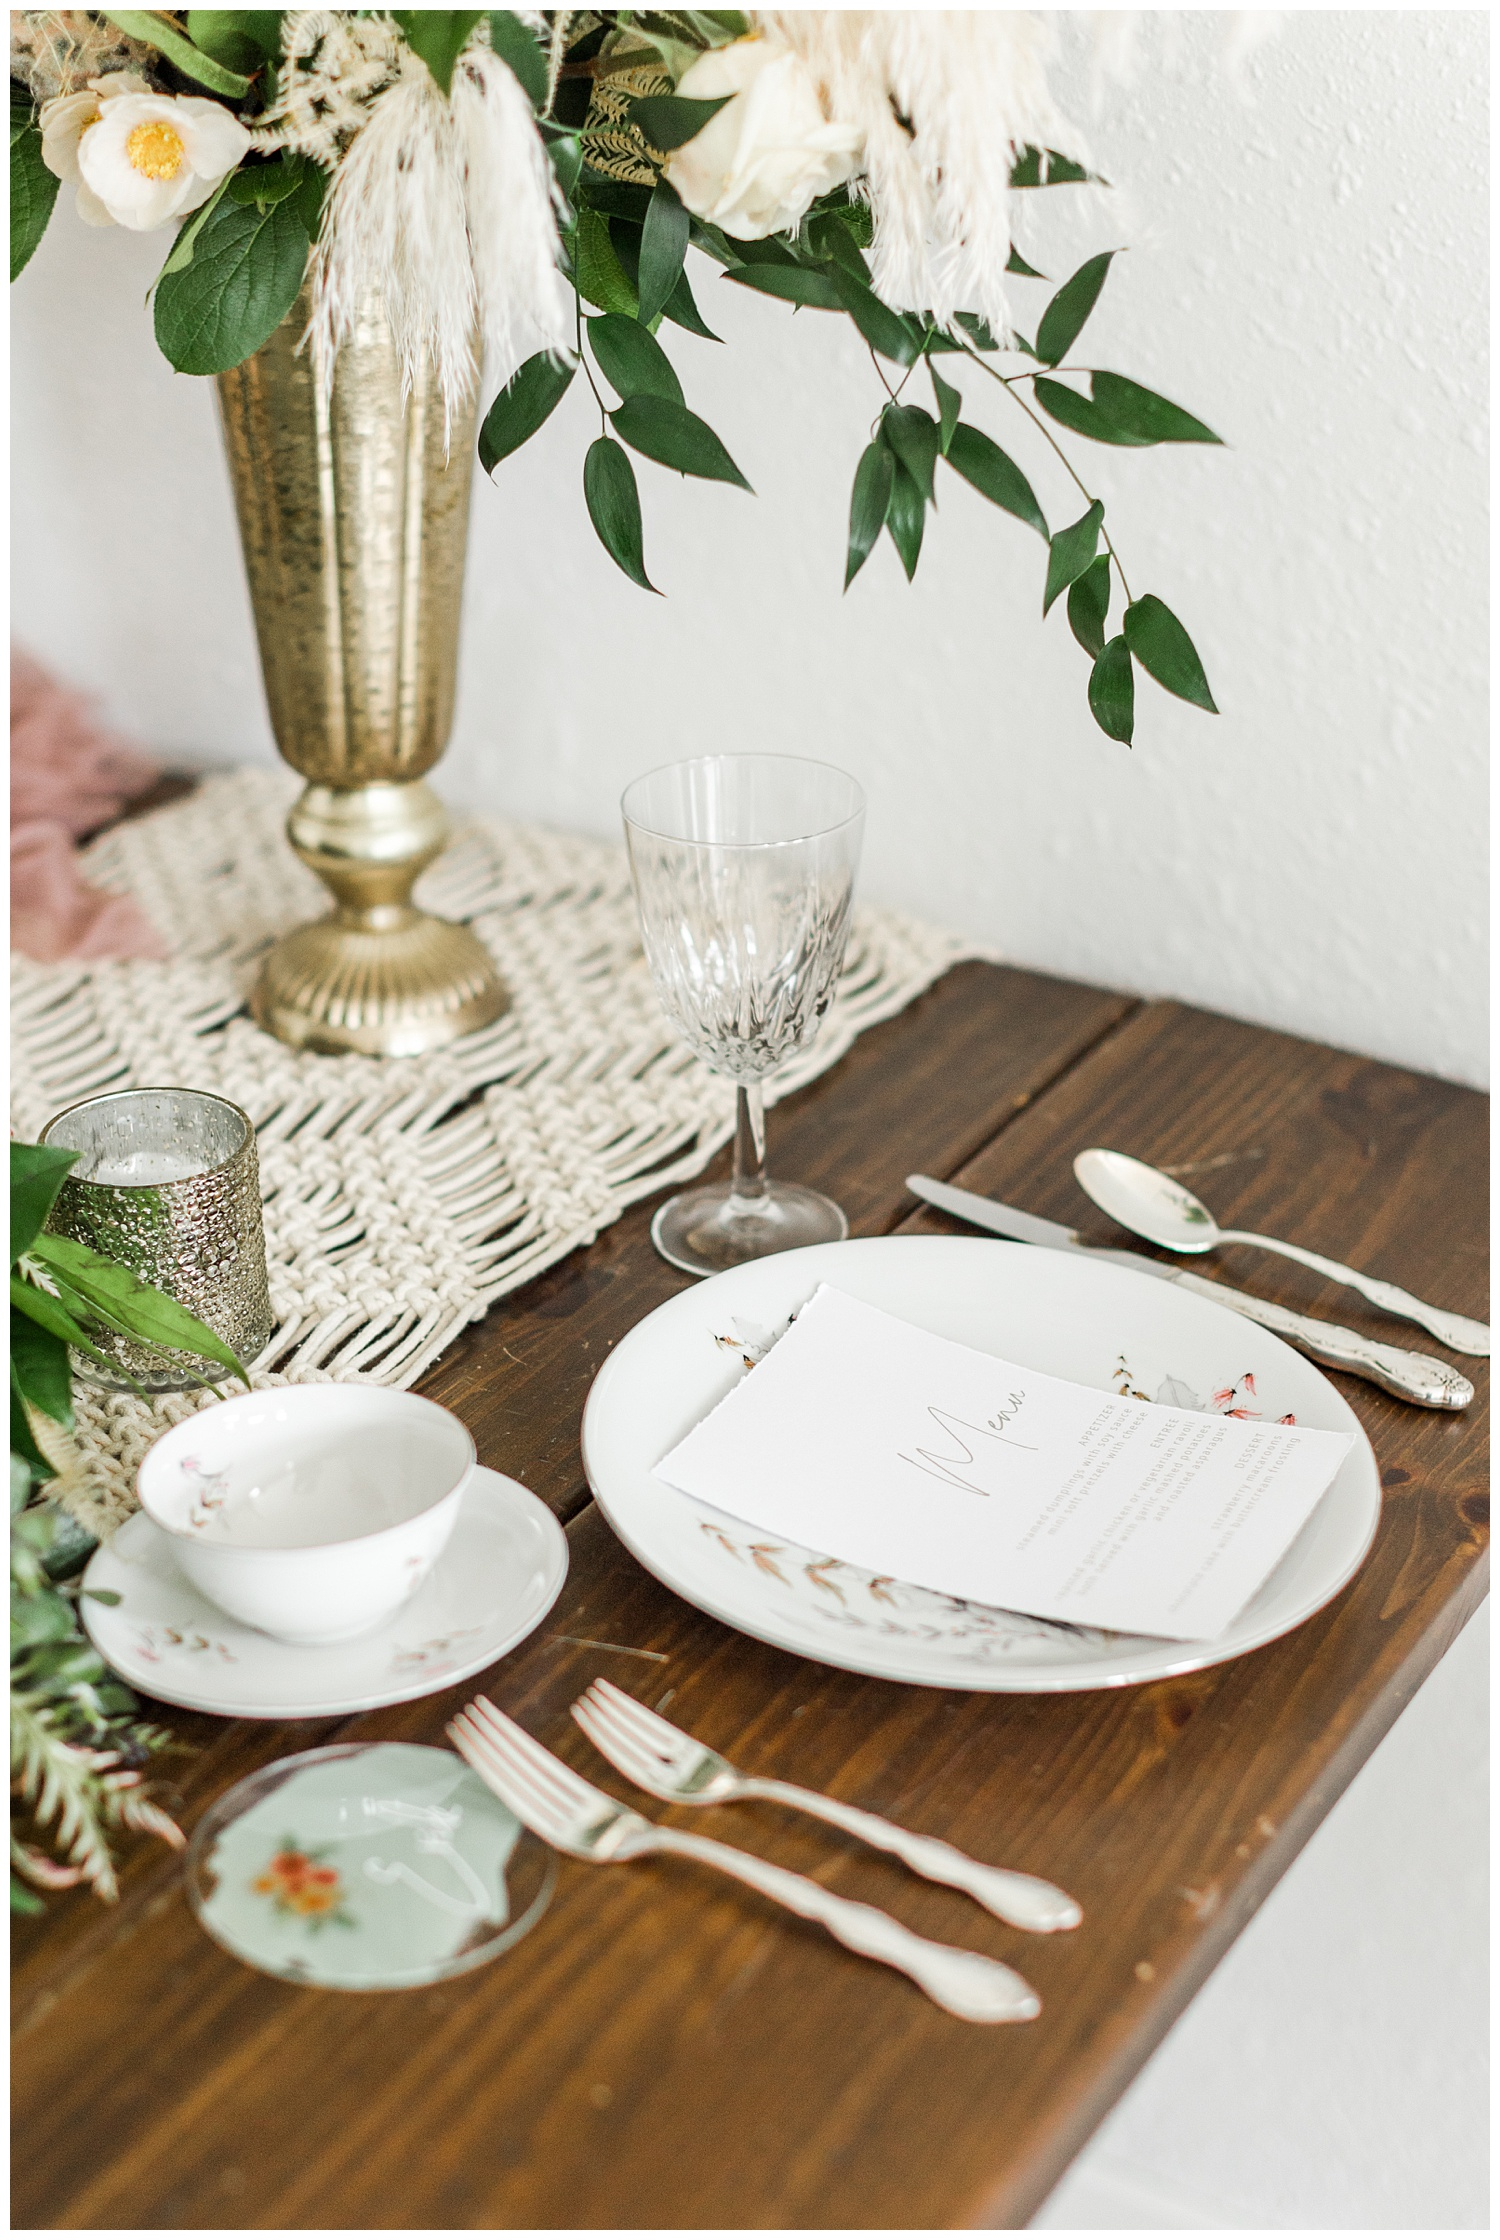 Vintage blush wedding place setting complete with boho florals, macrame and eucalyptus table runner and antique china | CB Studio